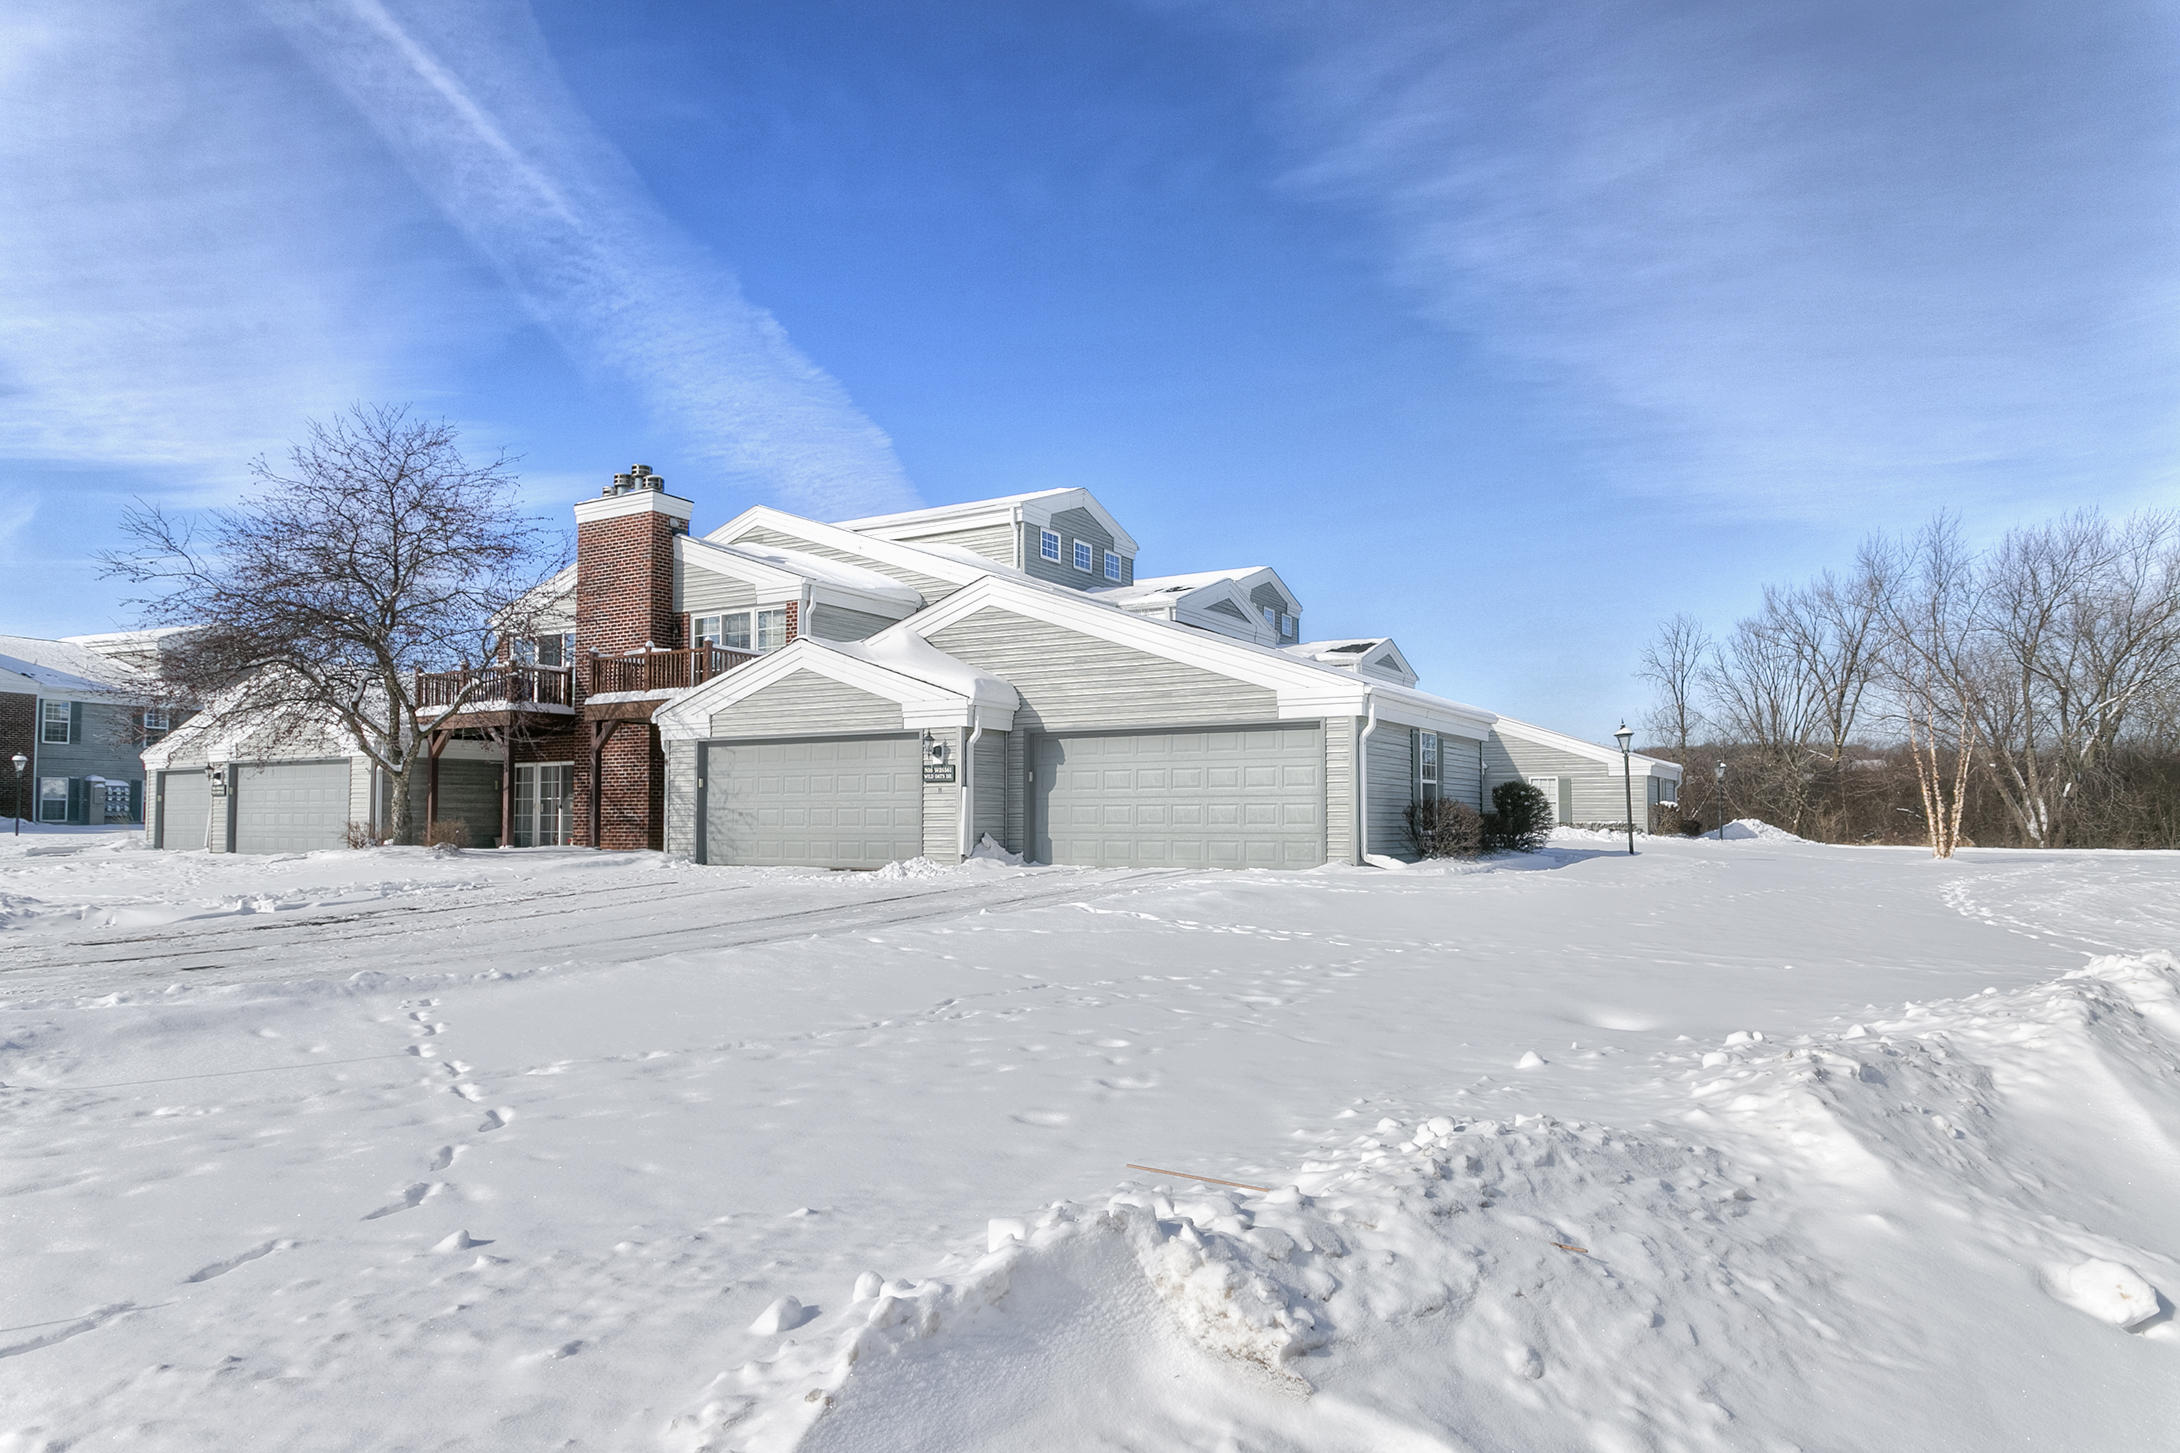 N16W26561 Wild Oats Dr, Pewaukee, Wisconsin 53072, 2 Bedrooms Bedrooms, 5 Rooms Rooms,2 BathroomsBathrooms,Condominiums,For Sale,Wild Oats Dr,1,1620328